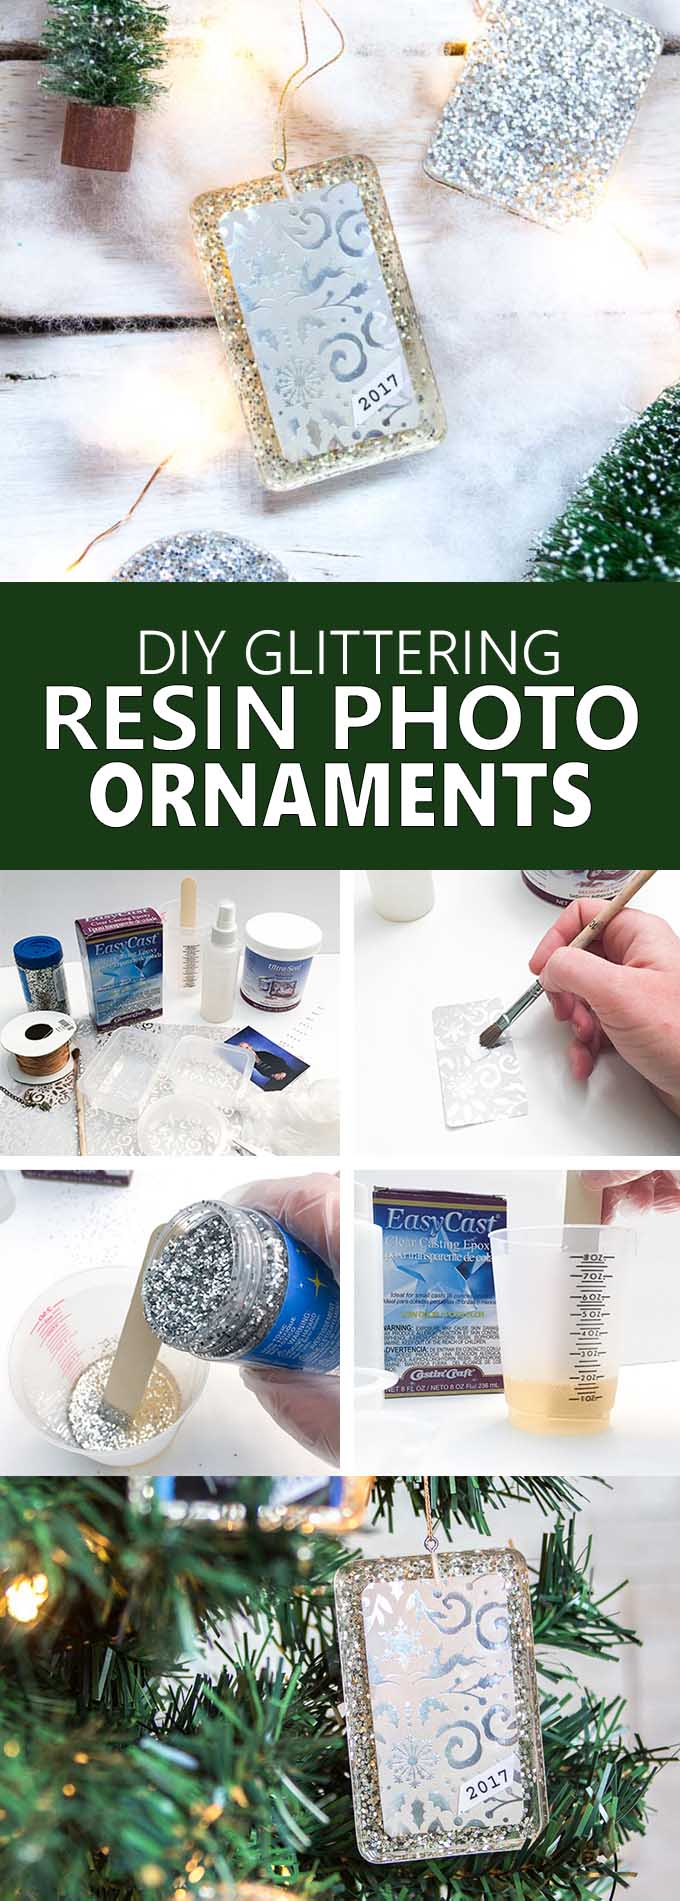 Beautiful DIY resin photo ornaments! Tutorial for Christmas ornaments with school photos. Gift idea for grandparents. #Christmasornaments #diyornaments #keepsake #giftforgrandma